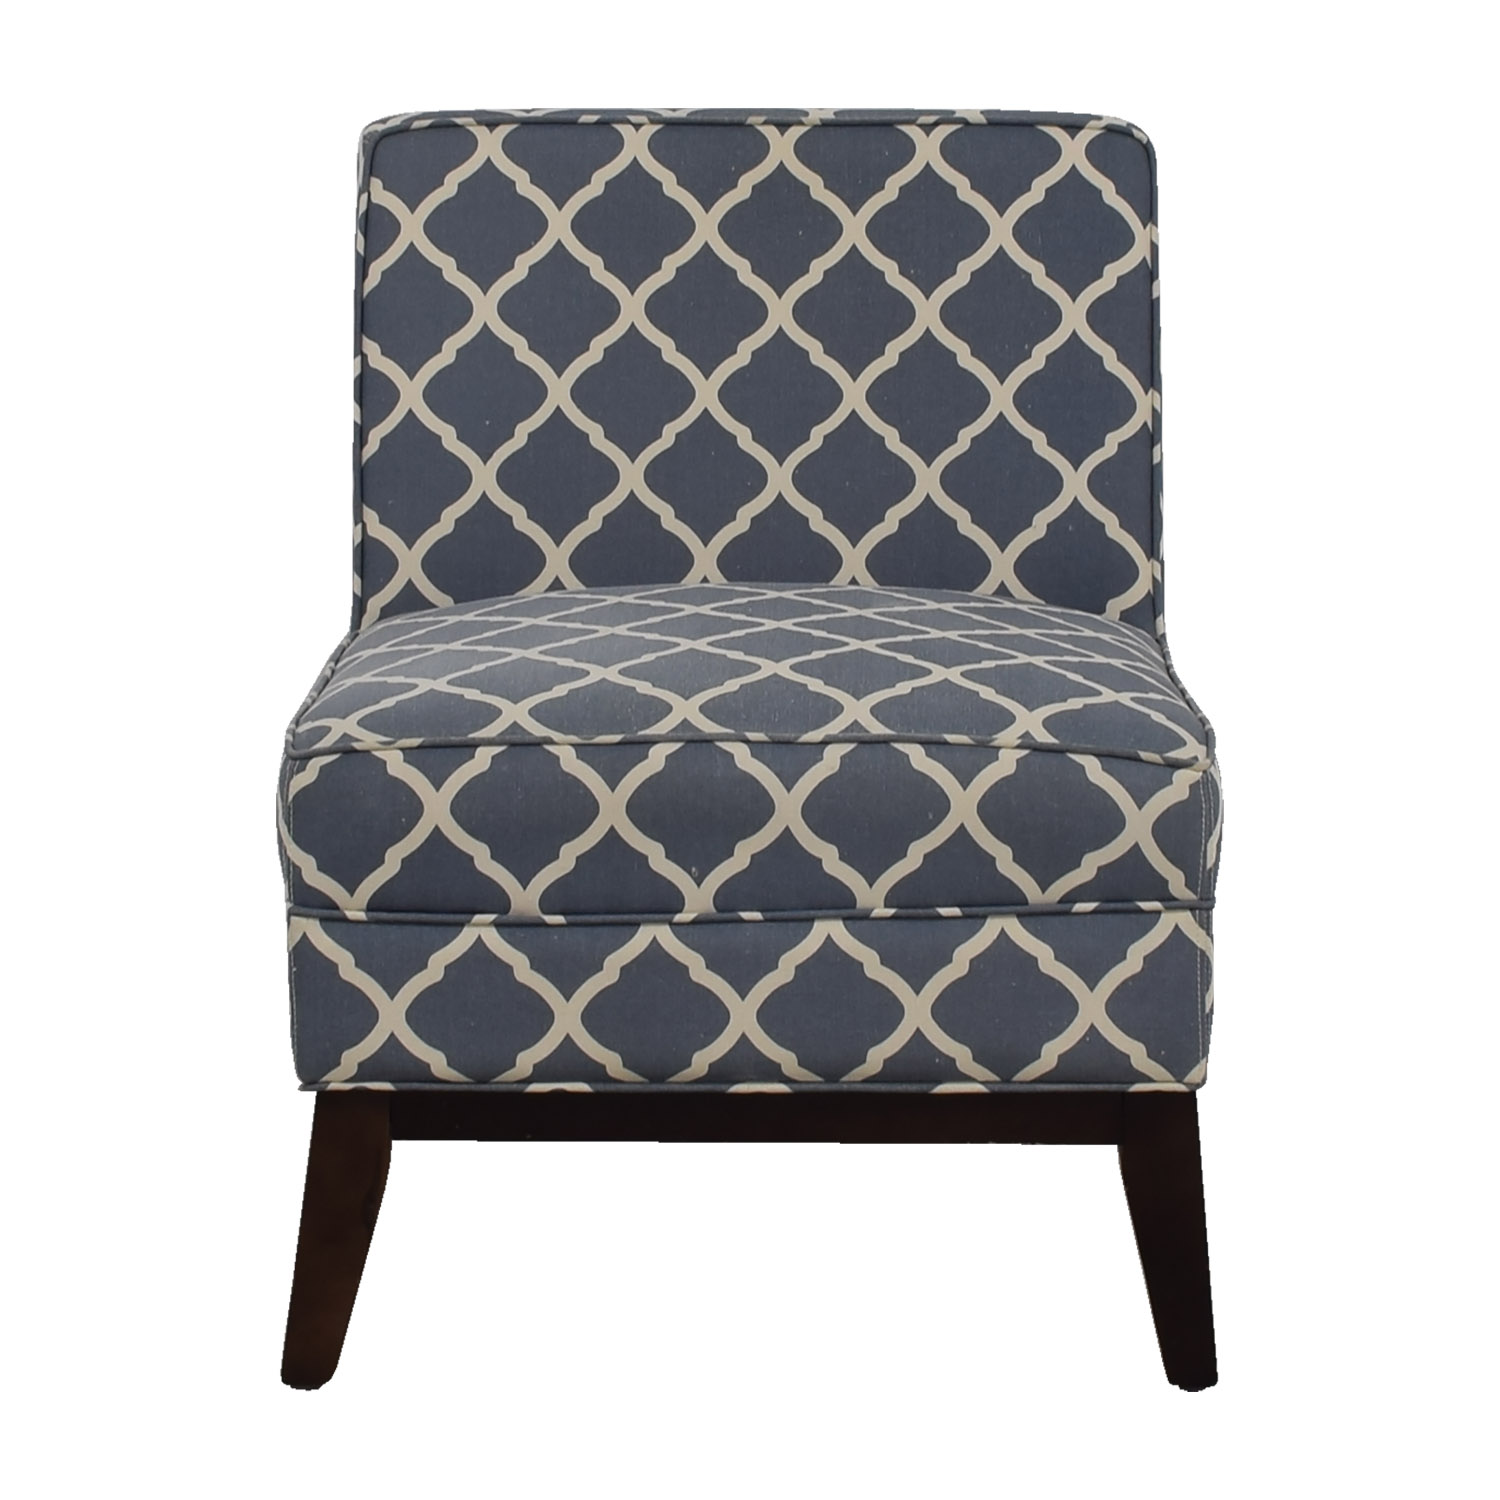 Joss and Main Joss and Main Blue and White Accent Chair coupon